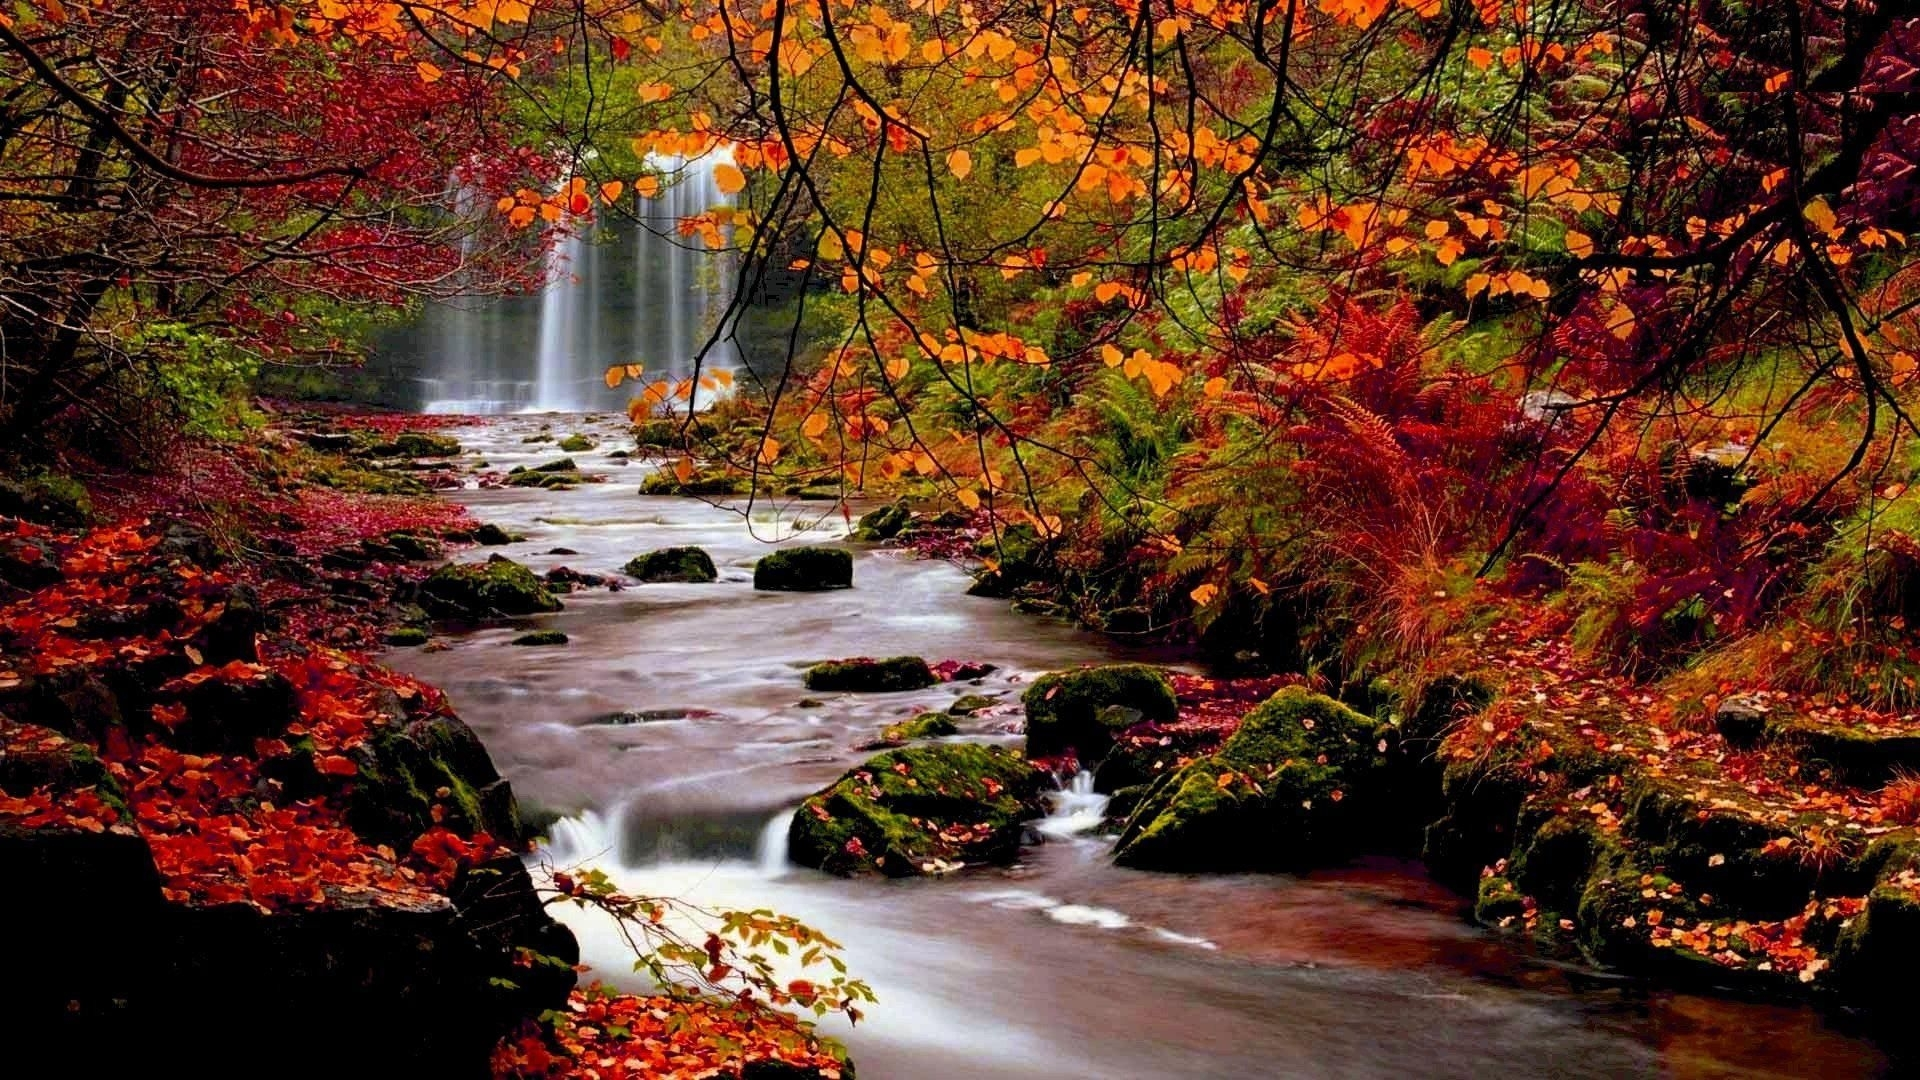 10 Best Computer Wallpaper Nature Fall FULL HD 1920×1080 For PC Background